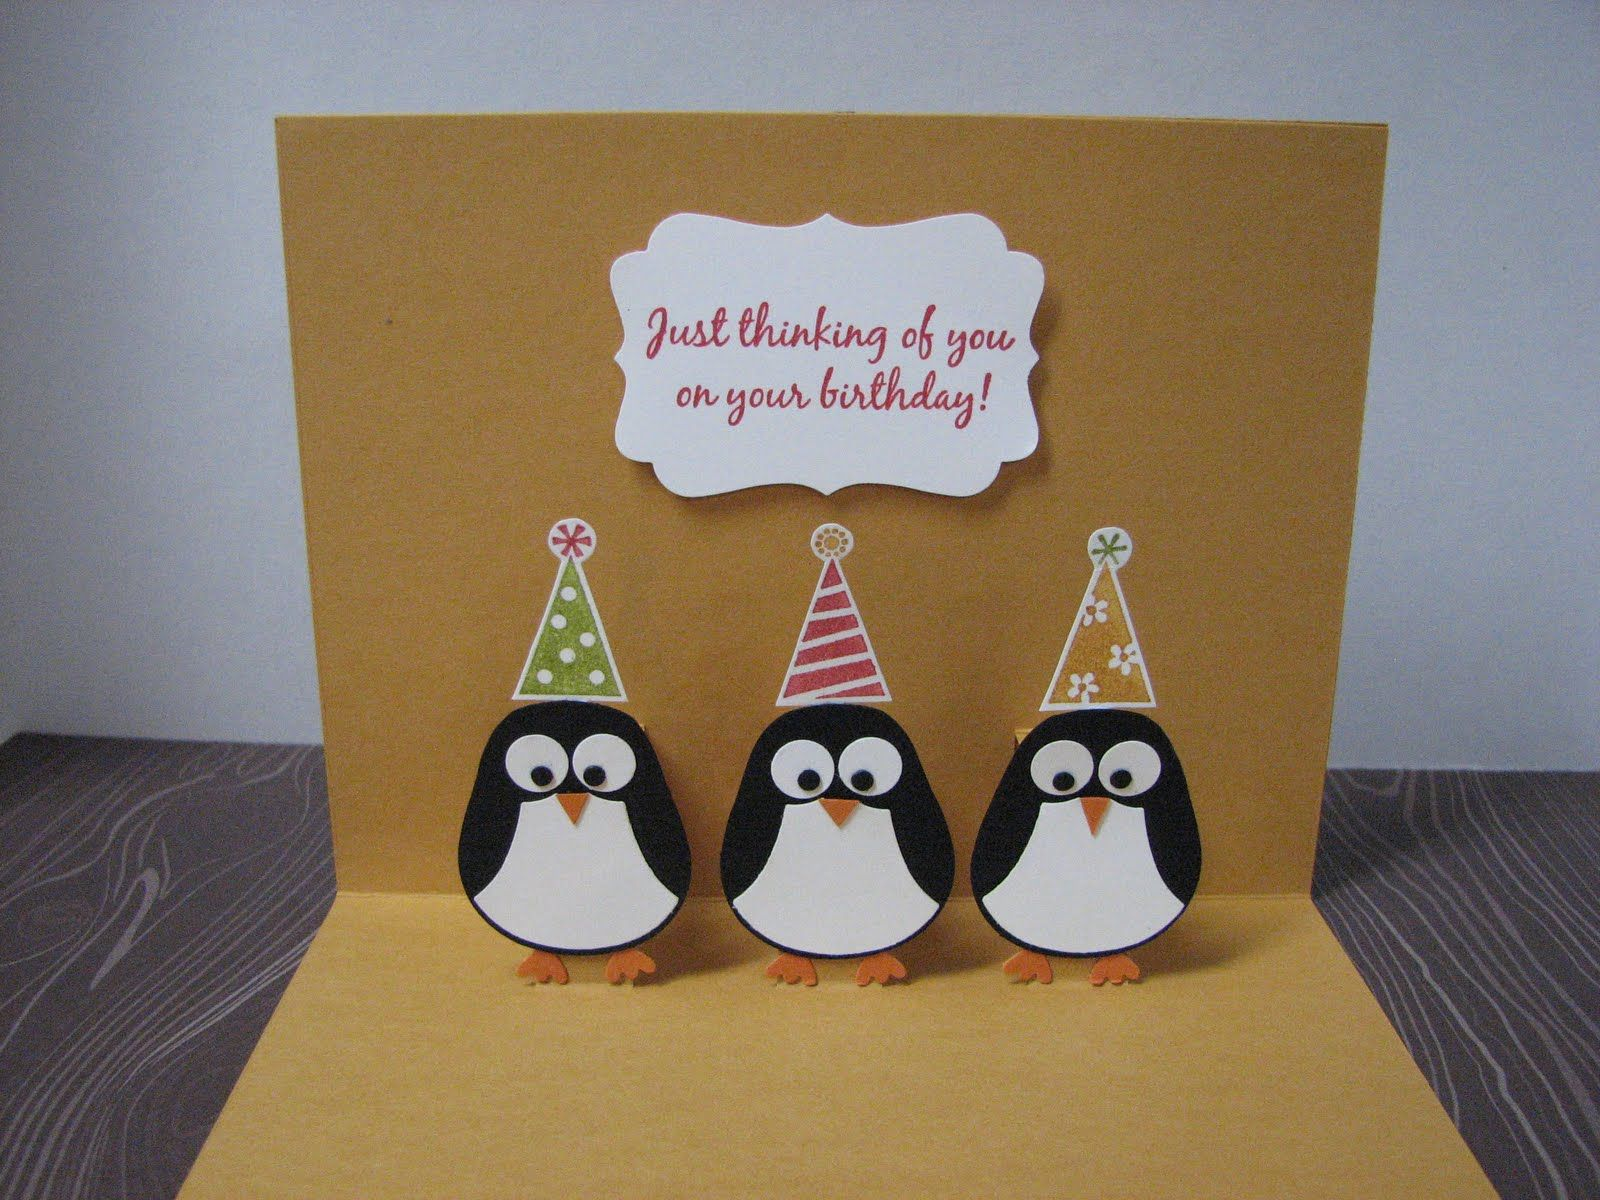 Surprise birthday penguins! Cool birthday cards